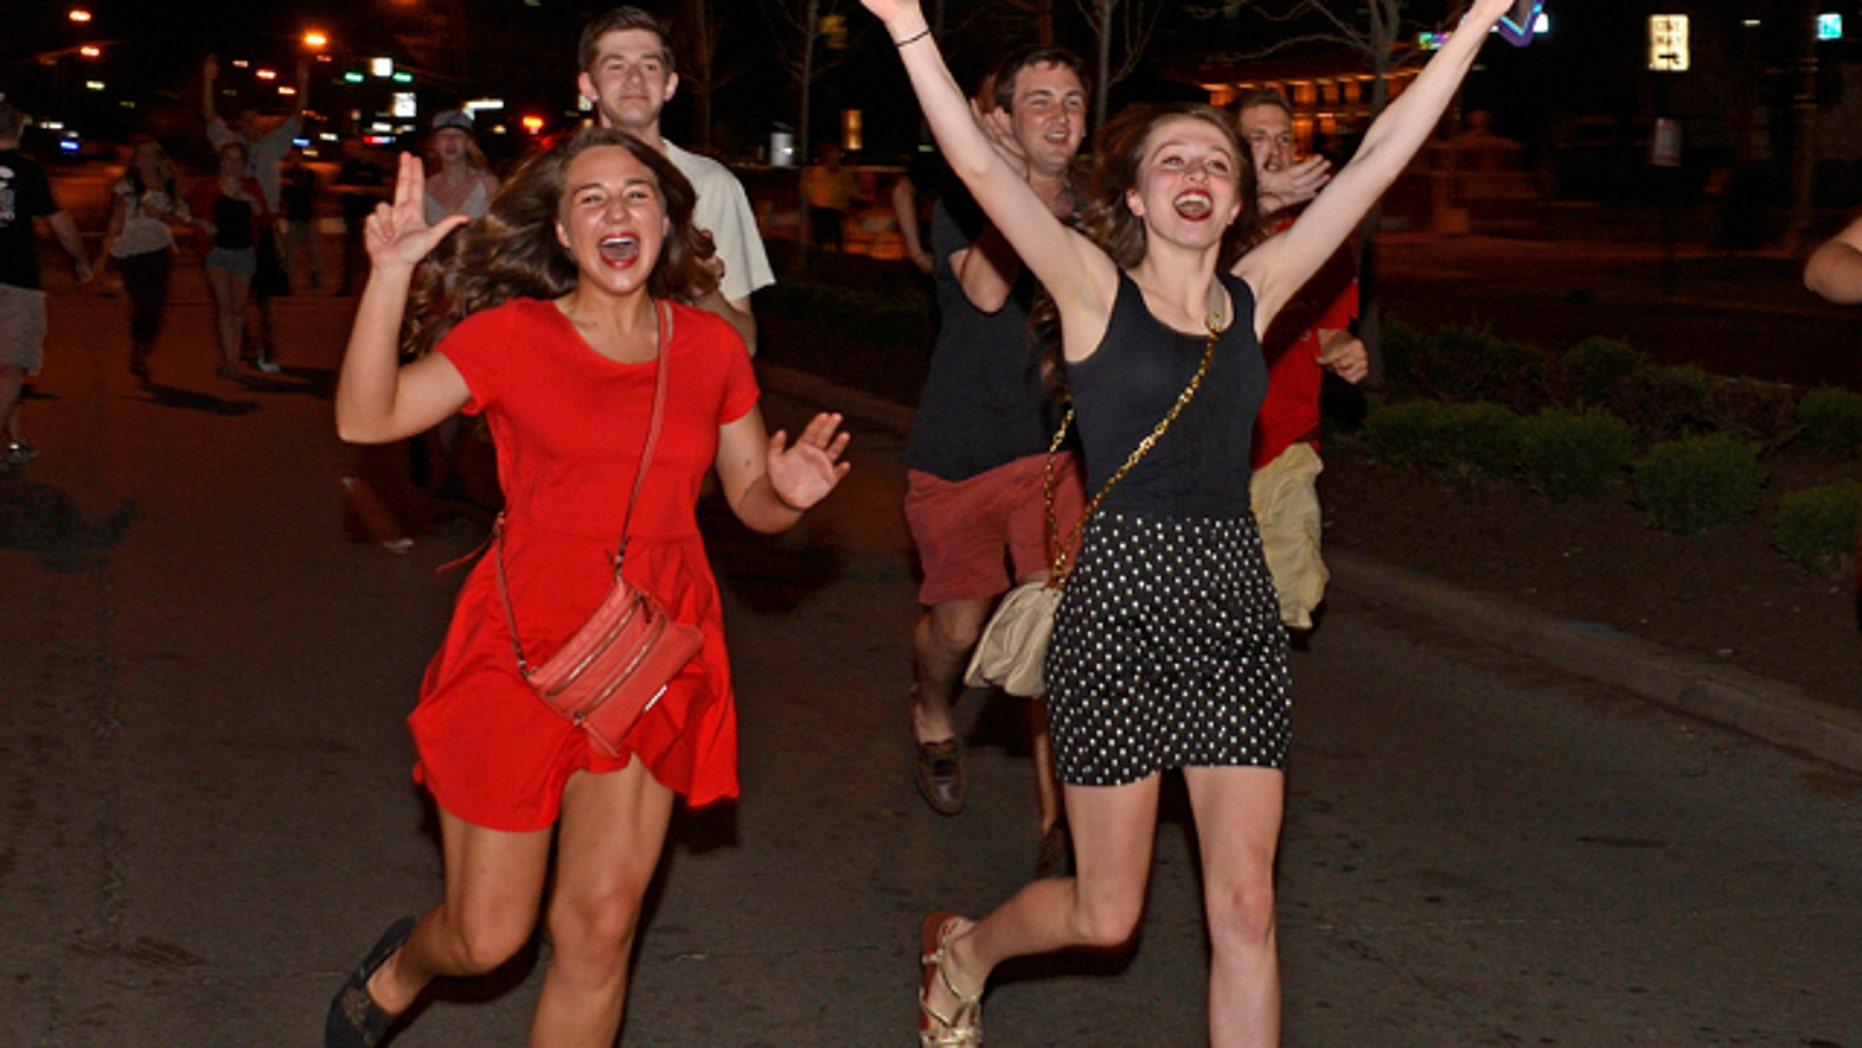 April 8, 2013: Louisville fans celebrate following their 82-76 victory in the 2013 NCAA Men's National Basketball Championship game.